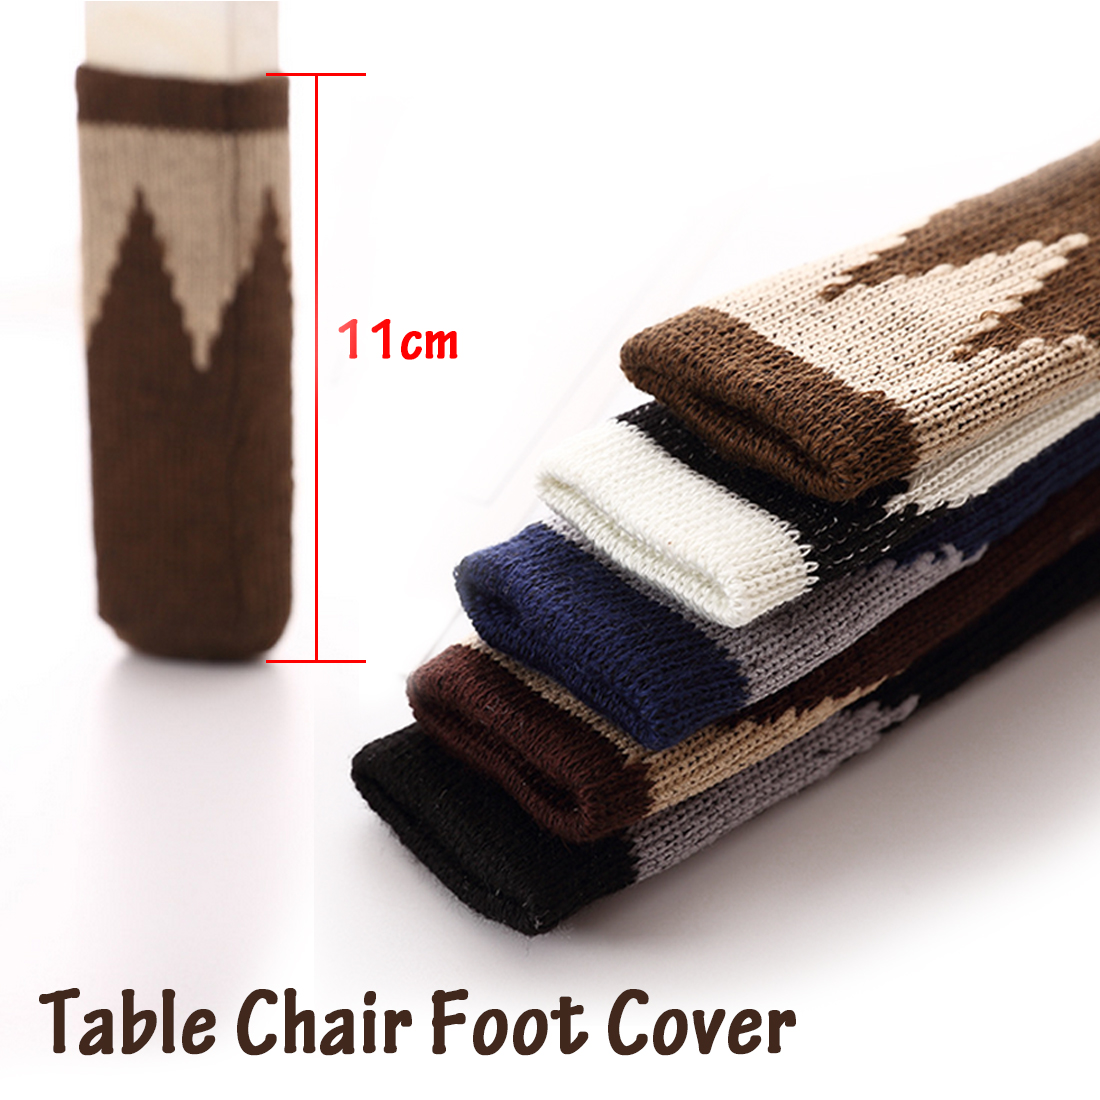 4Pcs Top Double Layers Type Thickened Knitting Chair Leg Floor Protectors Furniture Leg Cap Chair Antiskid Leg Socks Foot Strap